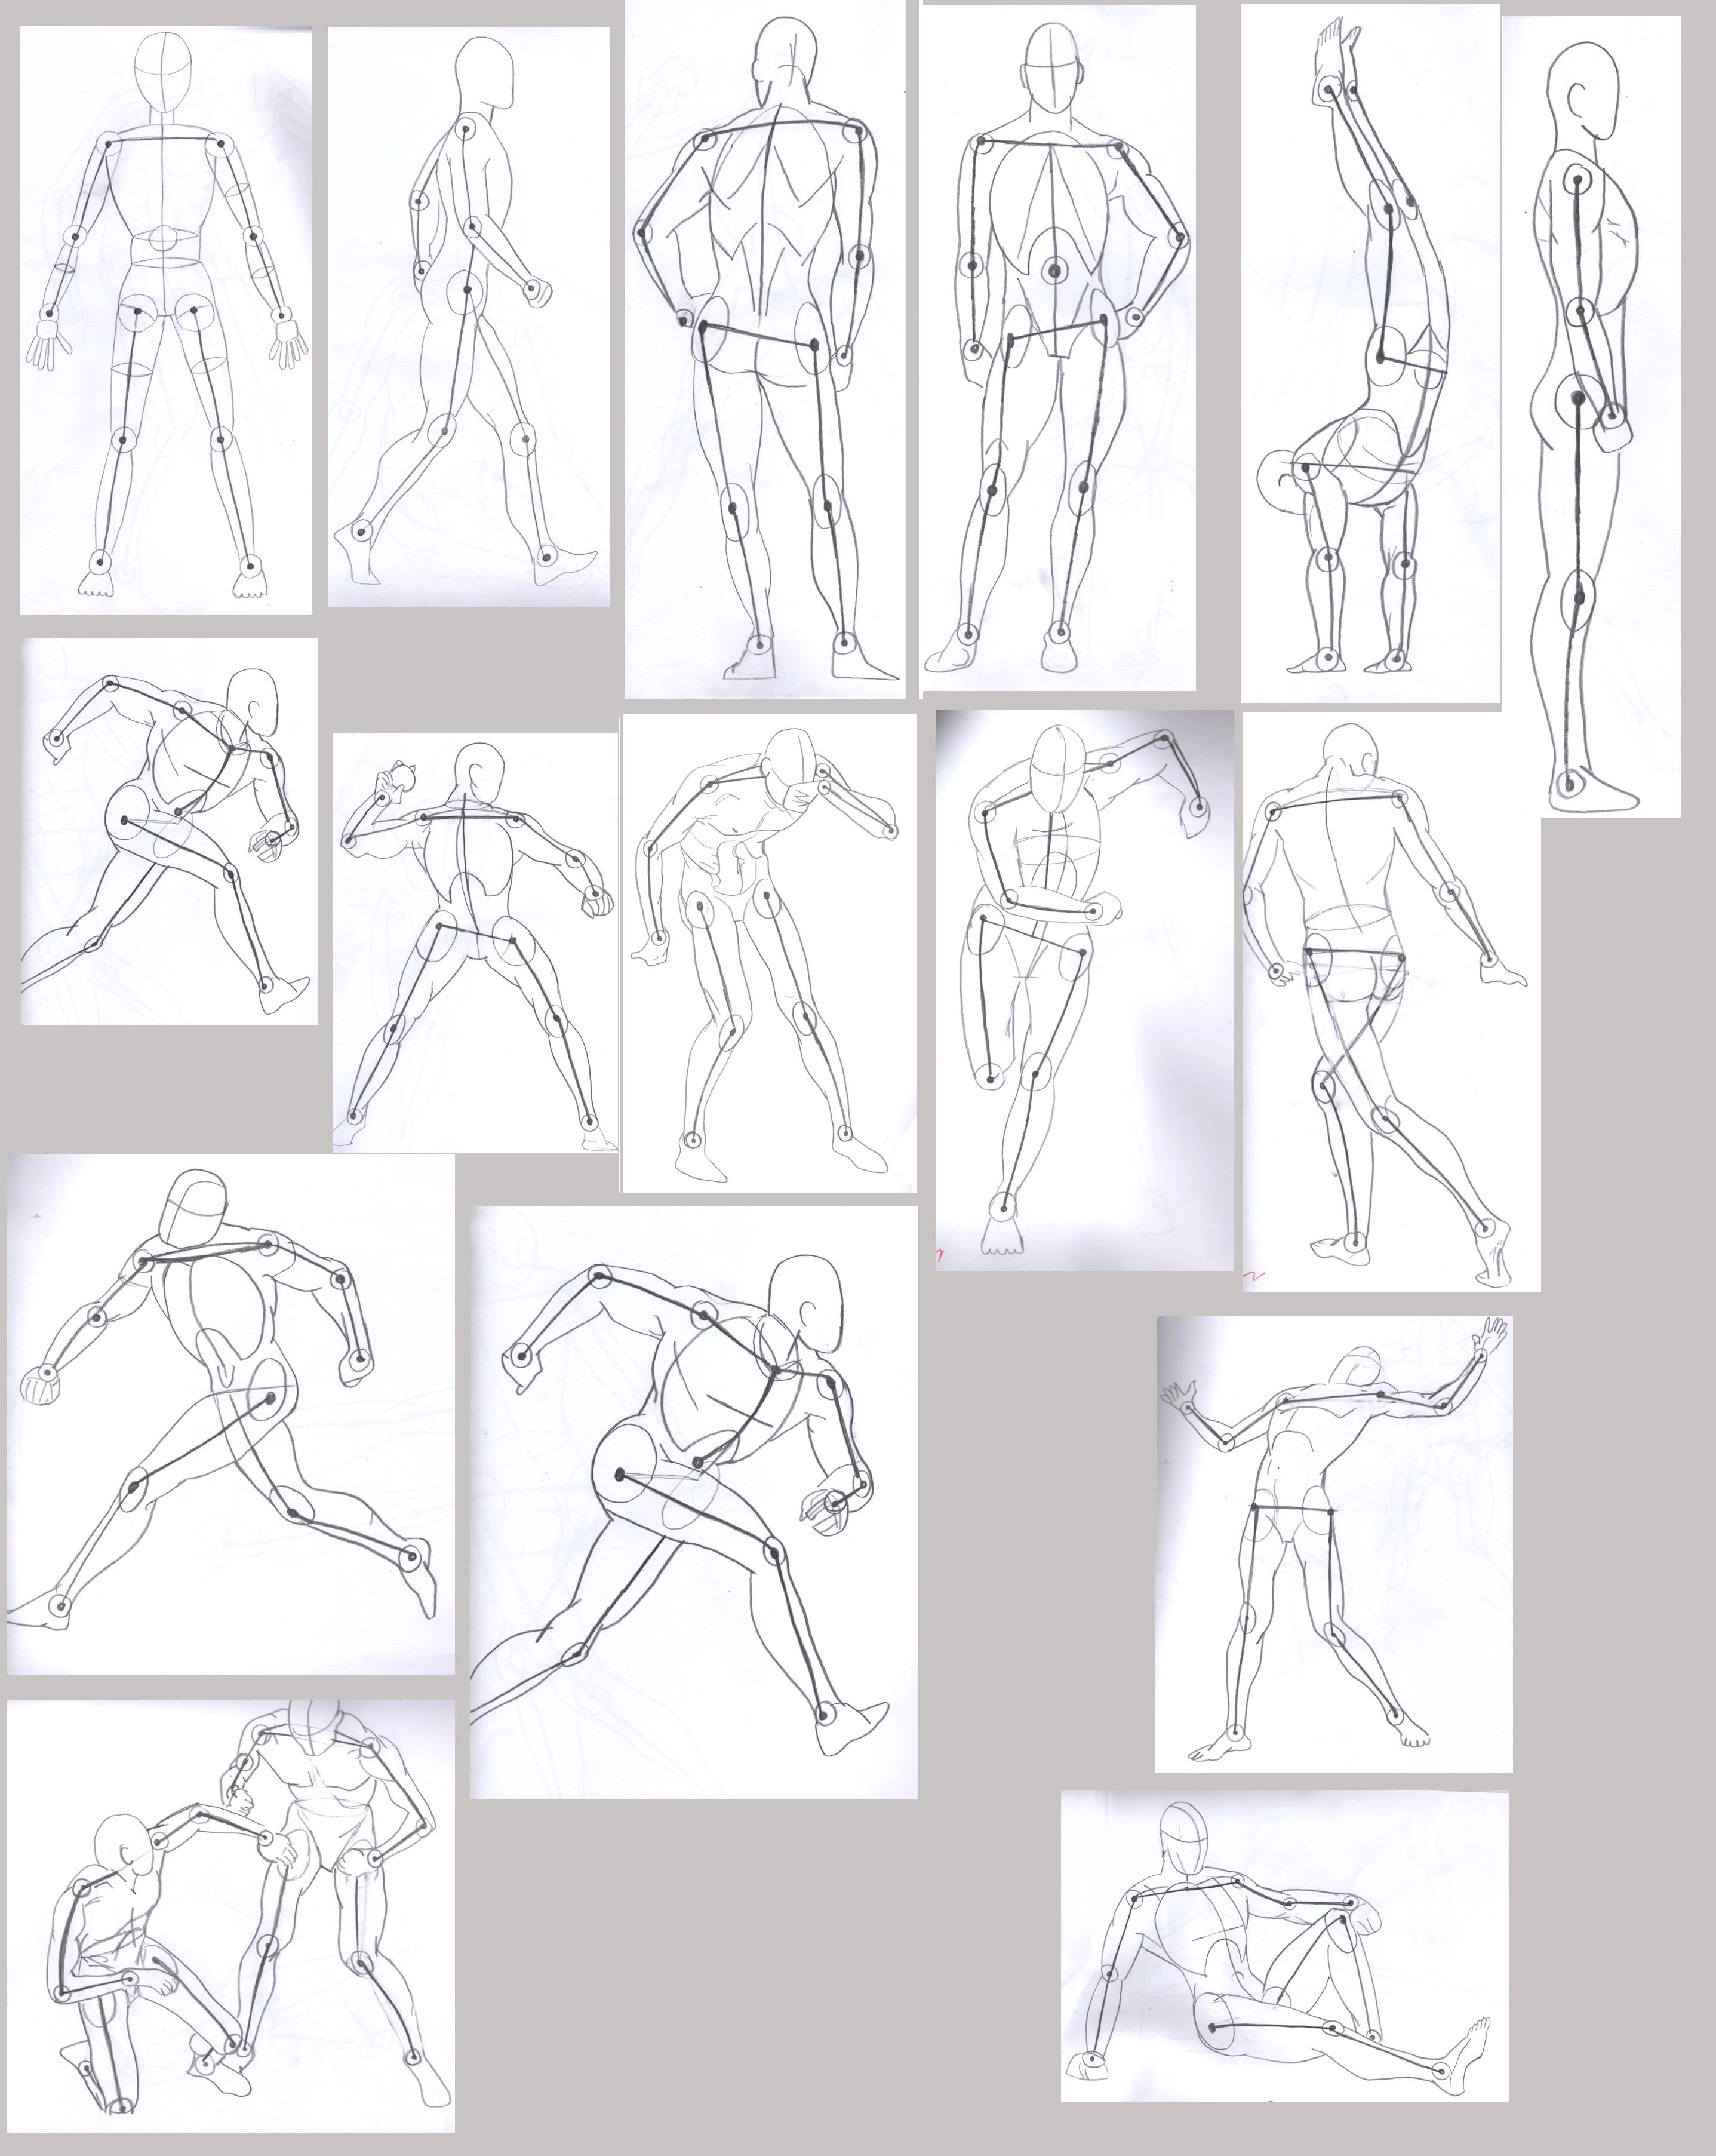 17 Body Positions By Ciry15 On Deviantart